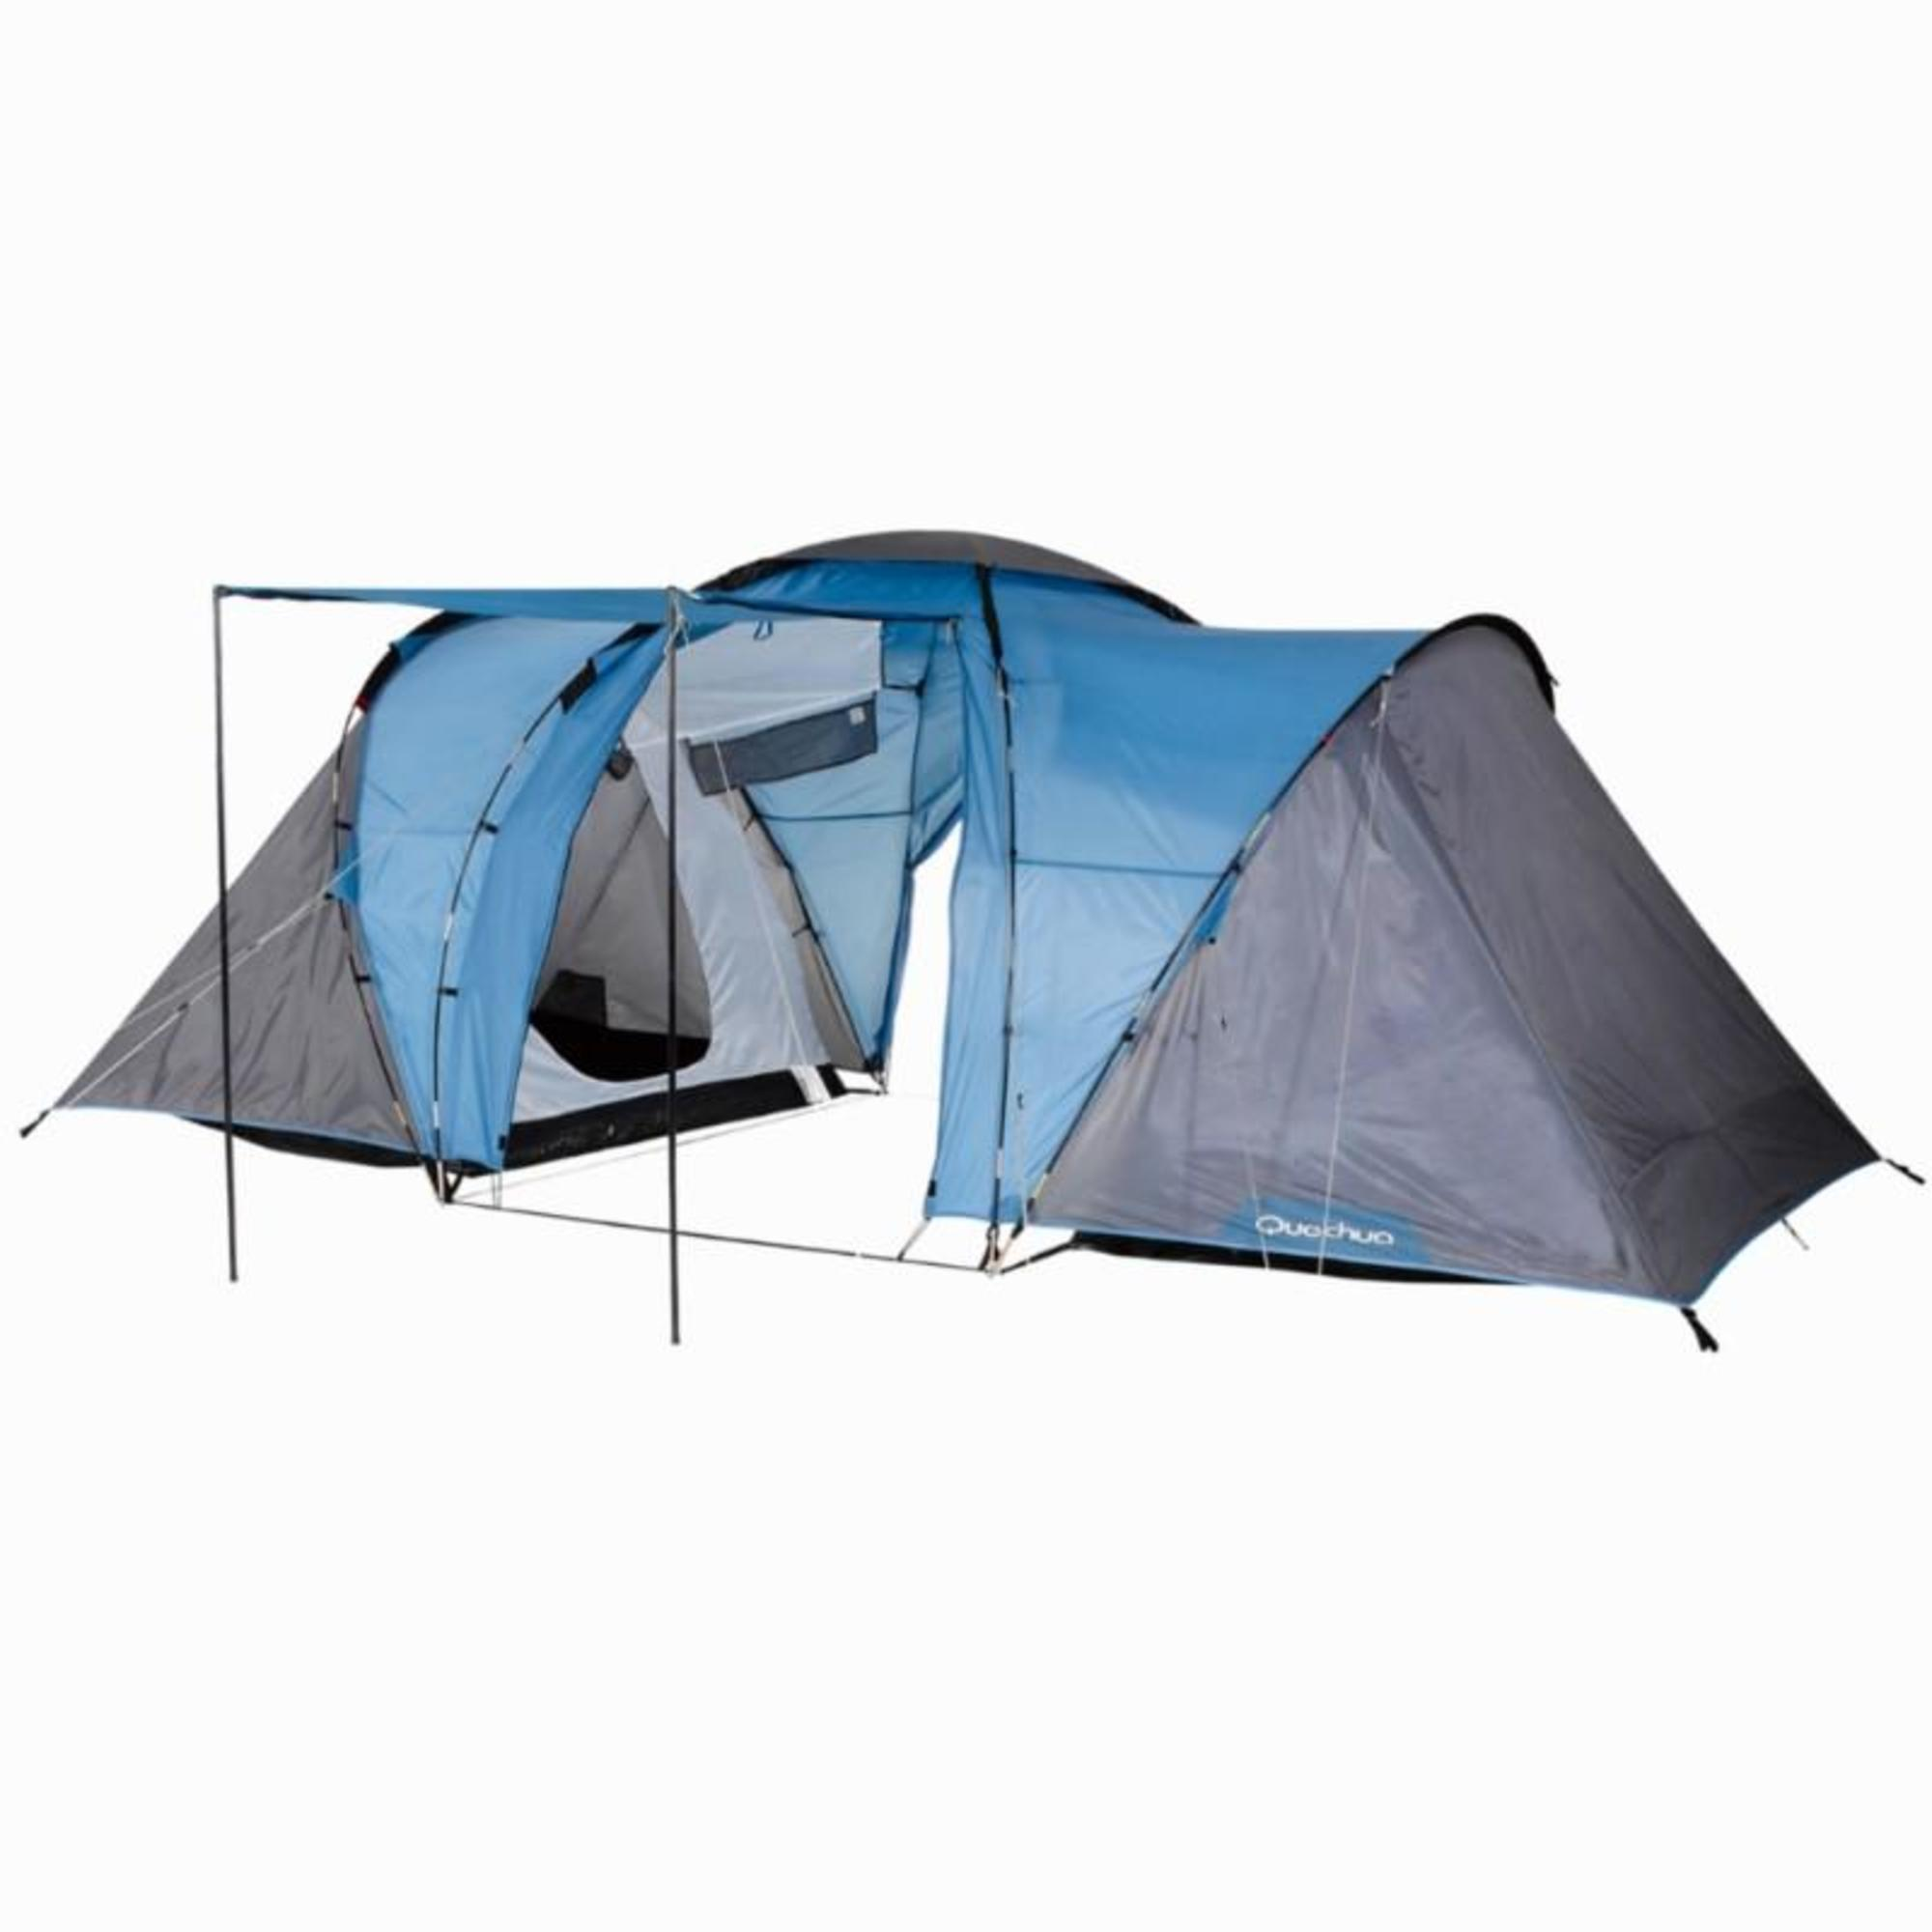 T4.2 DOME Tent  sc 1 st  Quechua & Camping tents for 4 to 8 people | Quechua